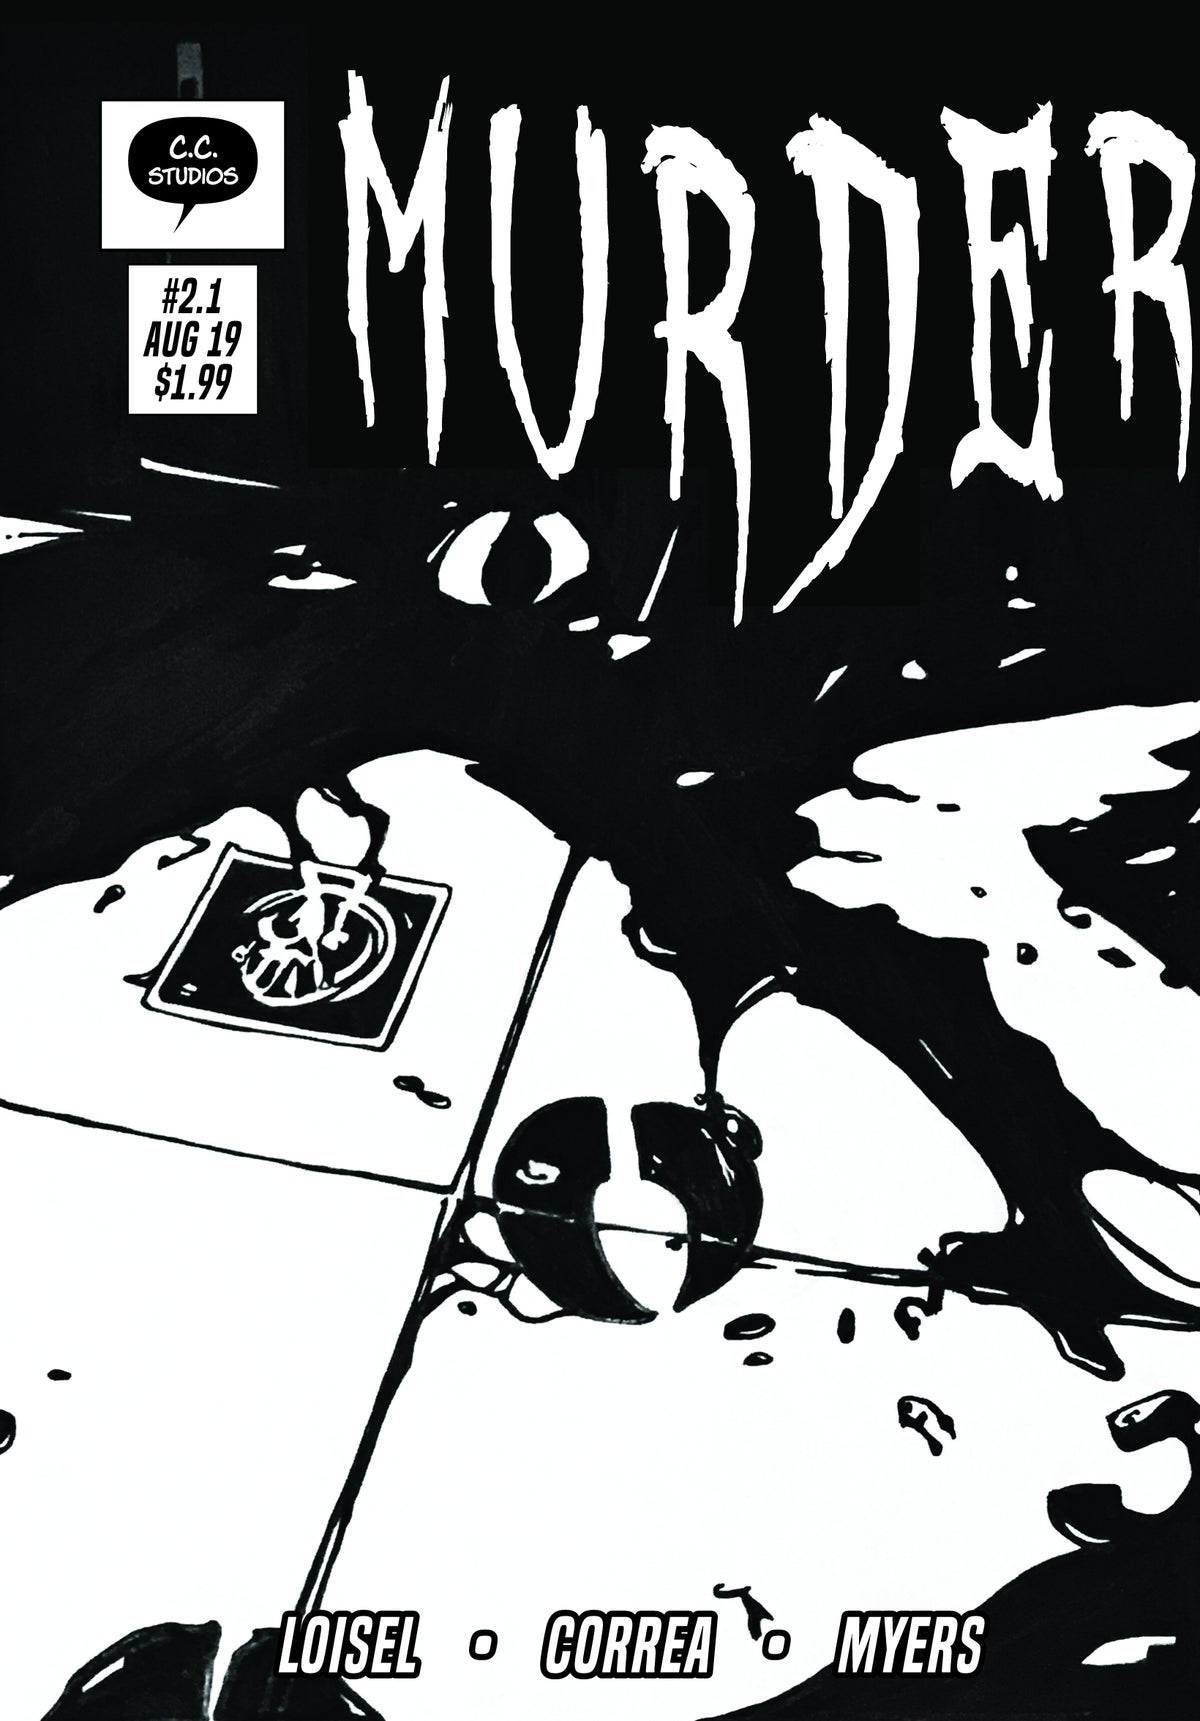 Image of Murder issue 2.1